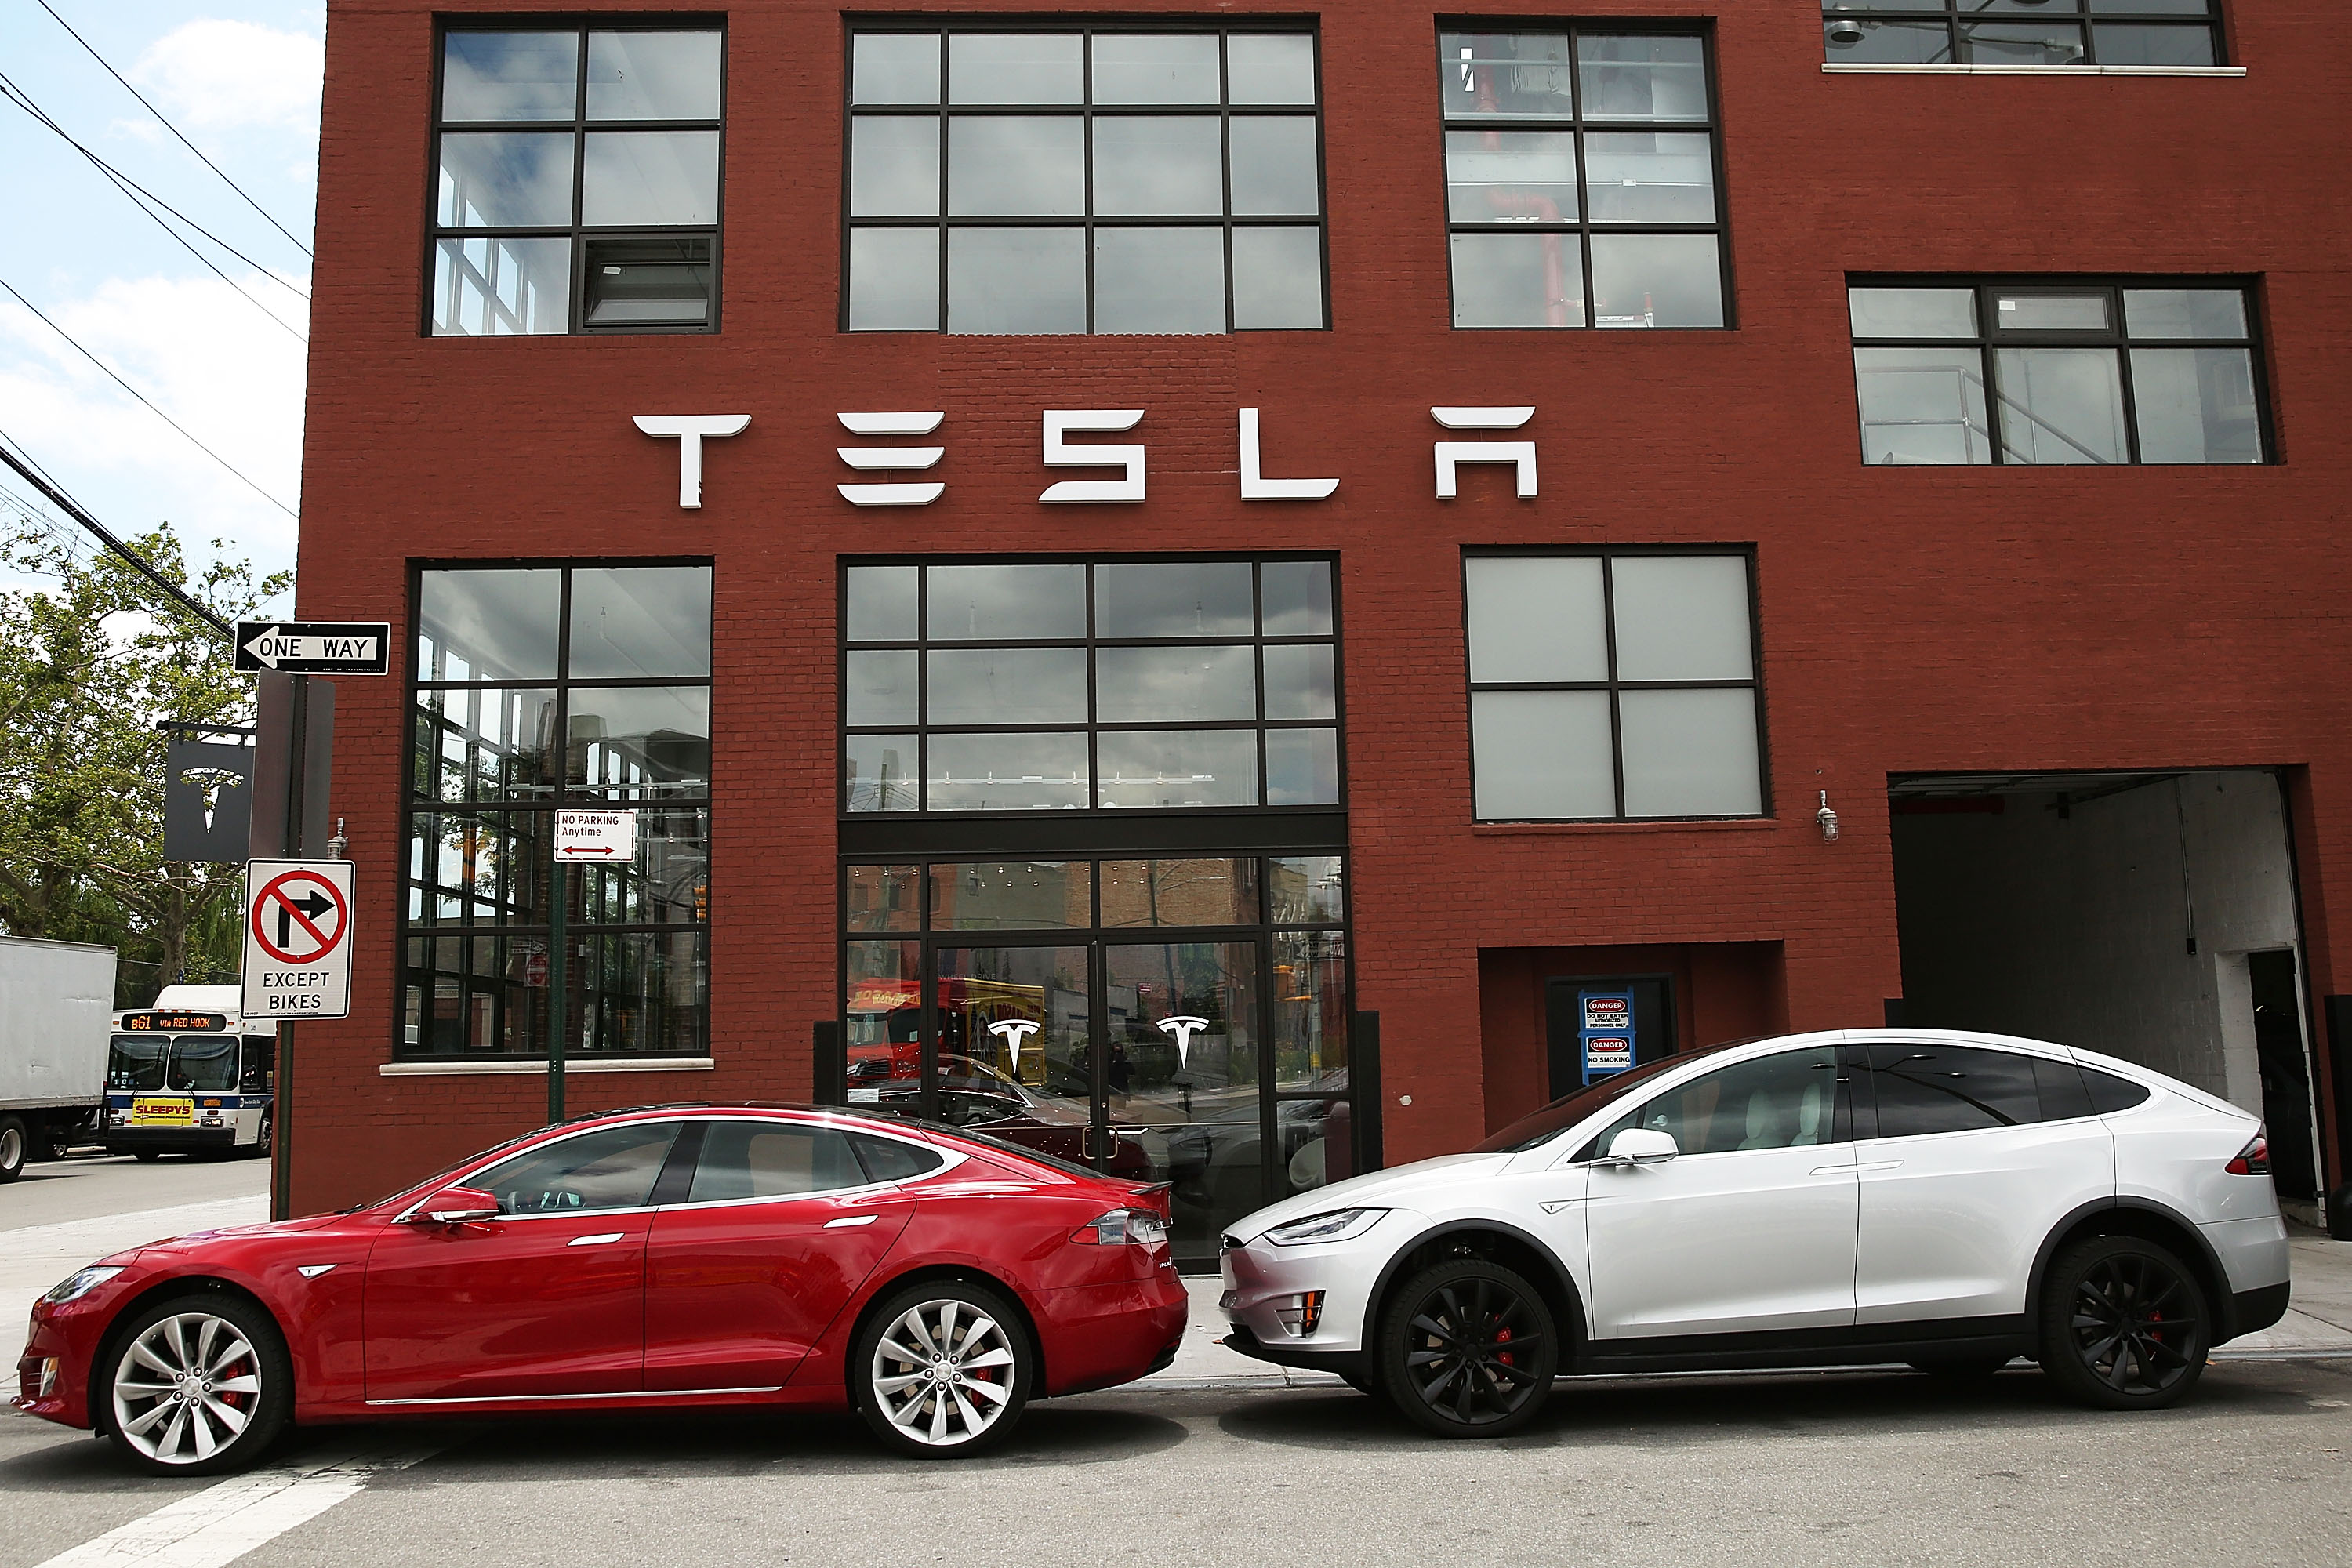 NEW YORK, NY - JULY 05: Tesla vehicles sit parked outside of a new Tesla showroom and service center in Red Hook, Brooklyn on July 5, 2016 in New York City. The electric car company and its CEO and founder Elon Musk have come under increasing scrutiny following a crash of one of its electric cars while using the controversial autopilot service. Joshua Brown crashed and died in Florida on May 7 in a Tesla car that was operating on autopilot, which means that Brown's hands were not on the steering wheel.   Spencer Platt/Getty Images/AFP